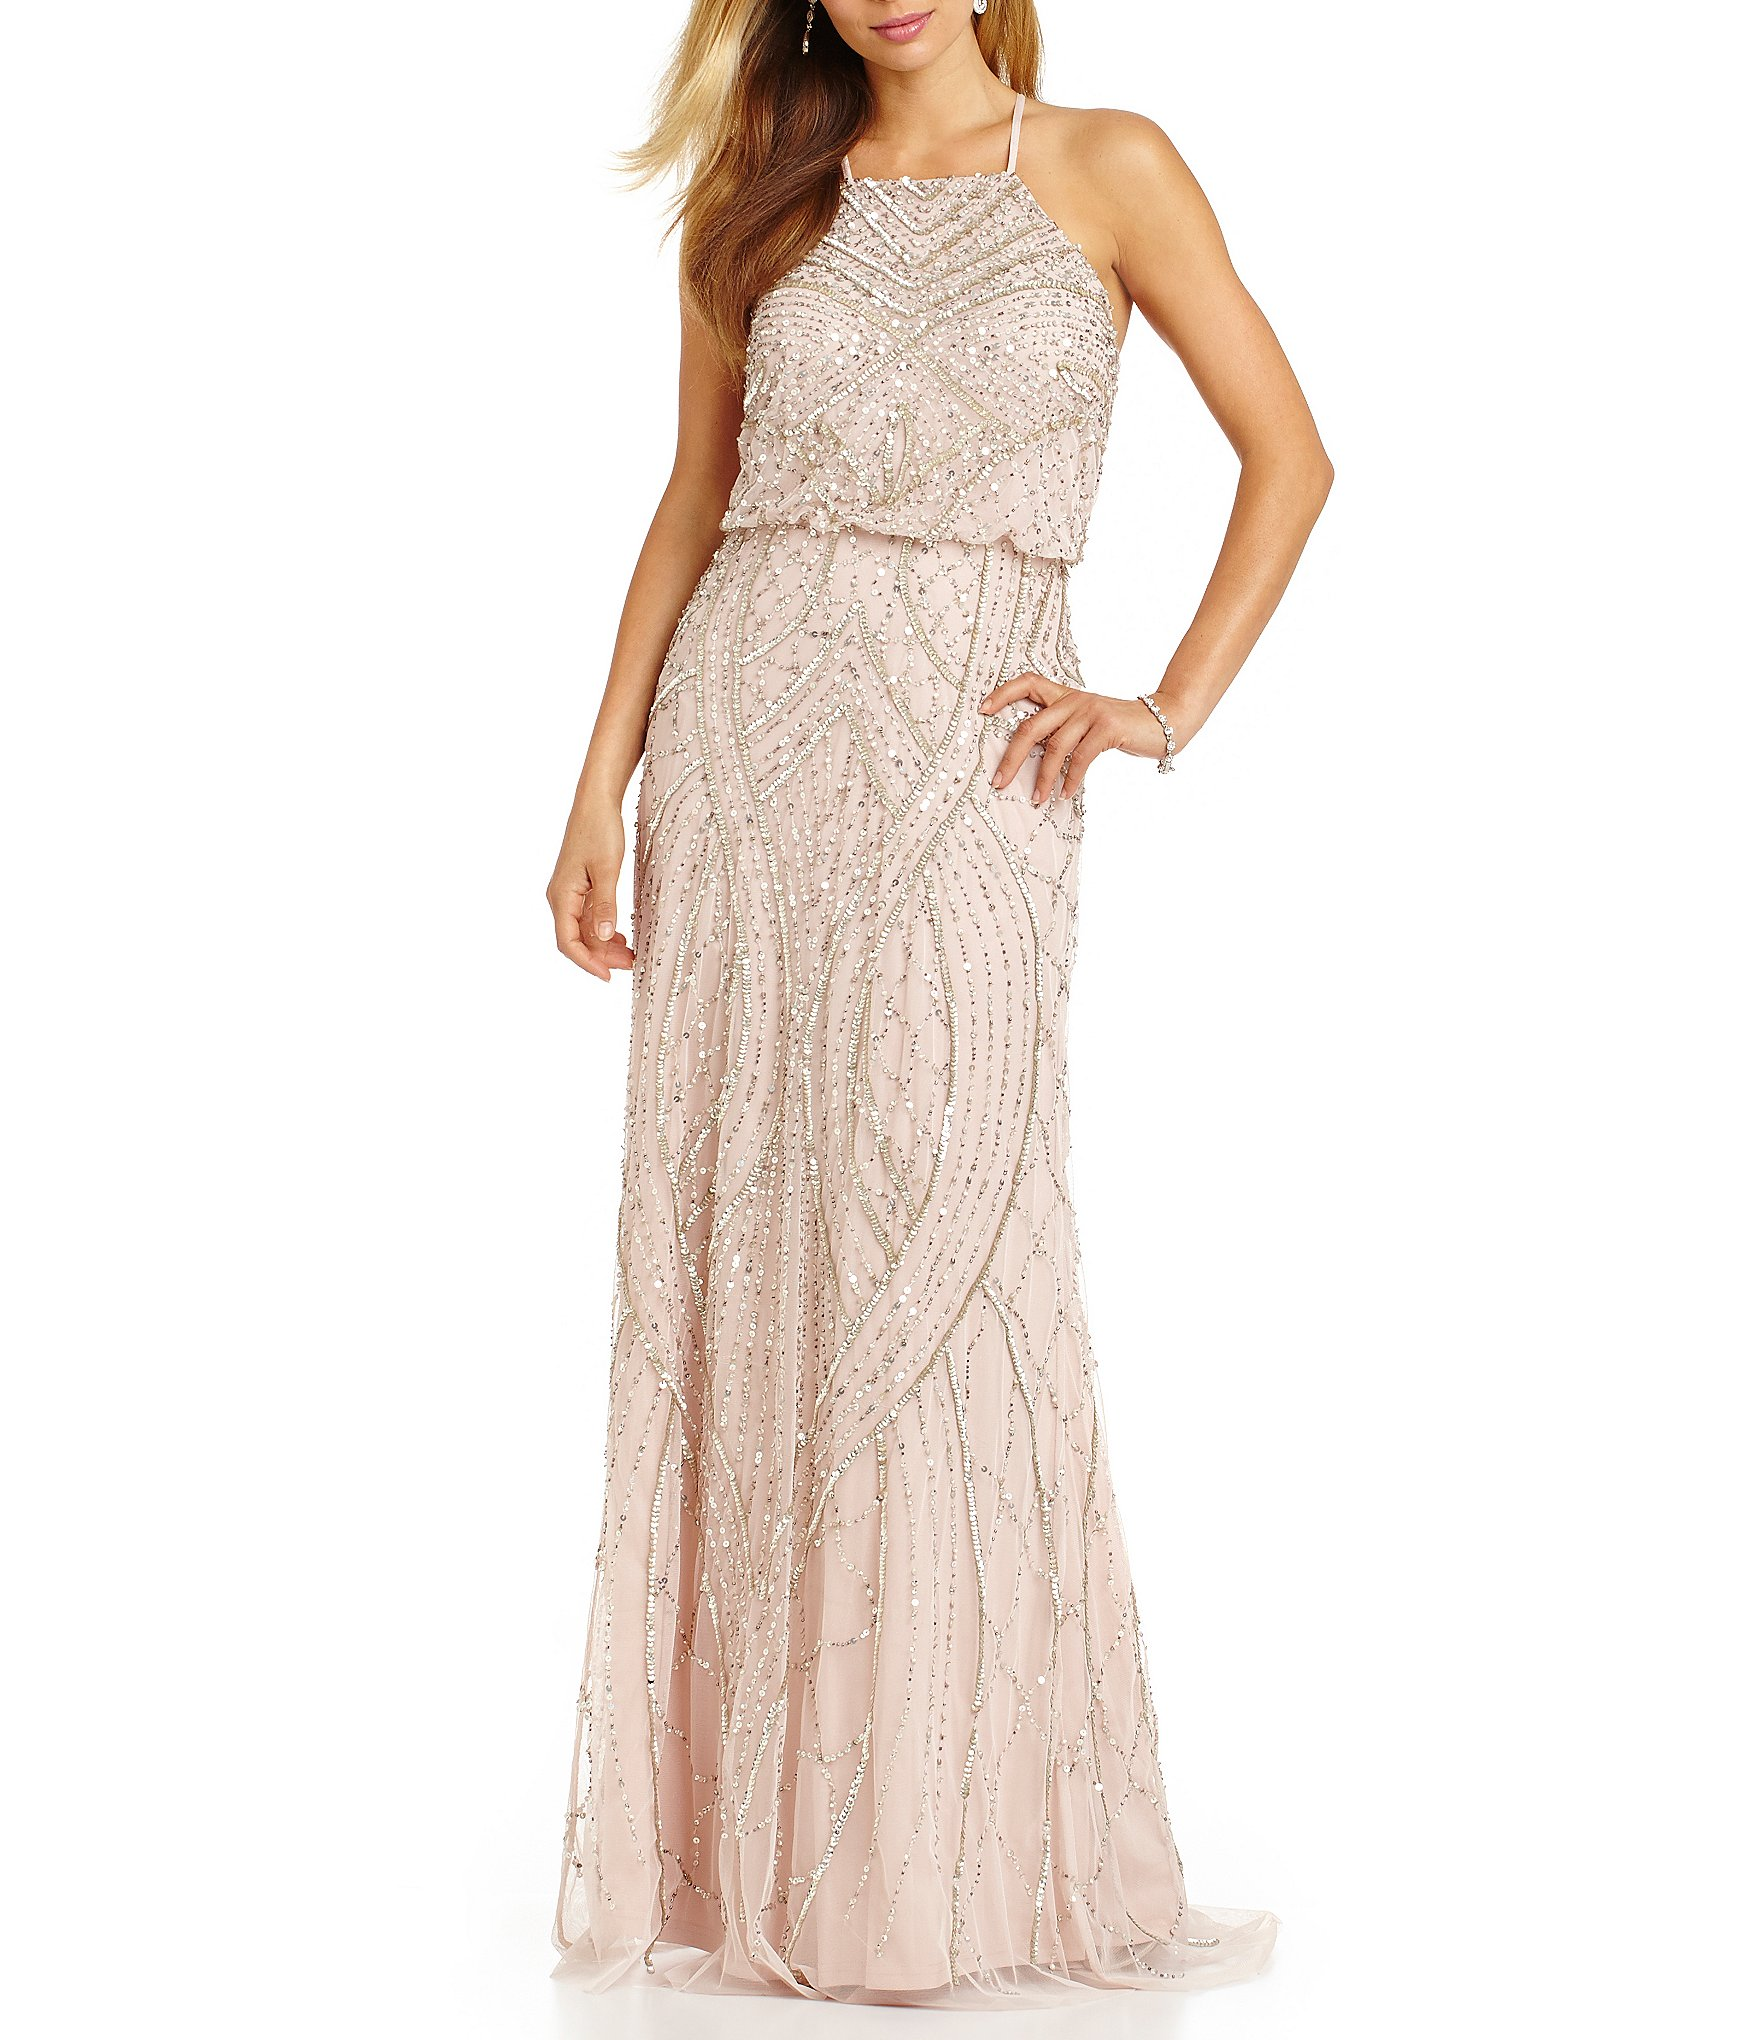 adrianna papell wedding dress papell beaded blouson gown dillards 1210